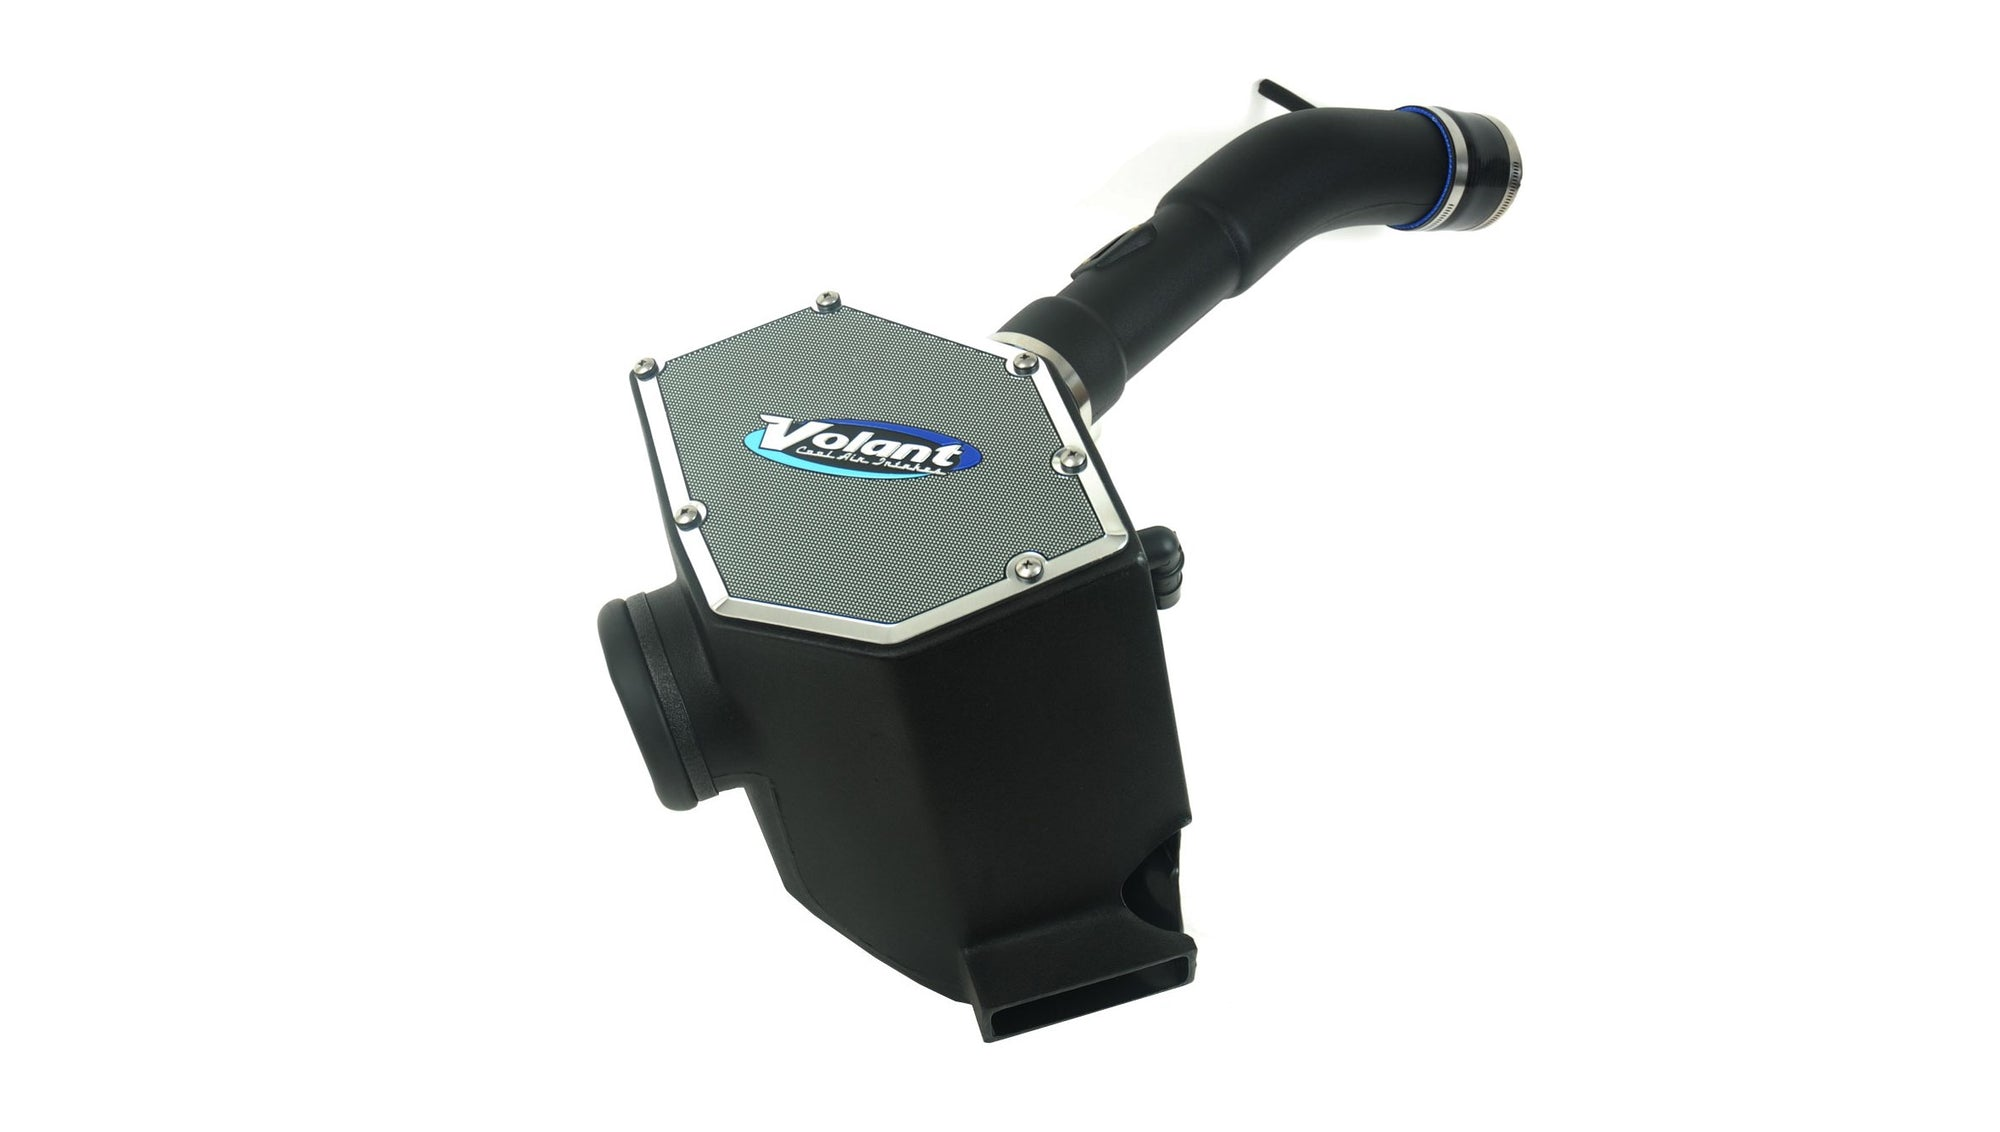 Closed Box Air Intake (15037) 2007-2012 Chevrolet Colorado 3.7L V6, GMC Canyon 3.7L V6